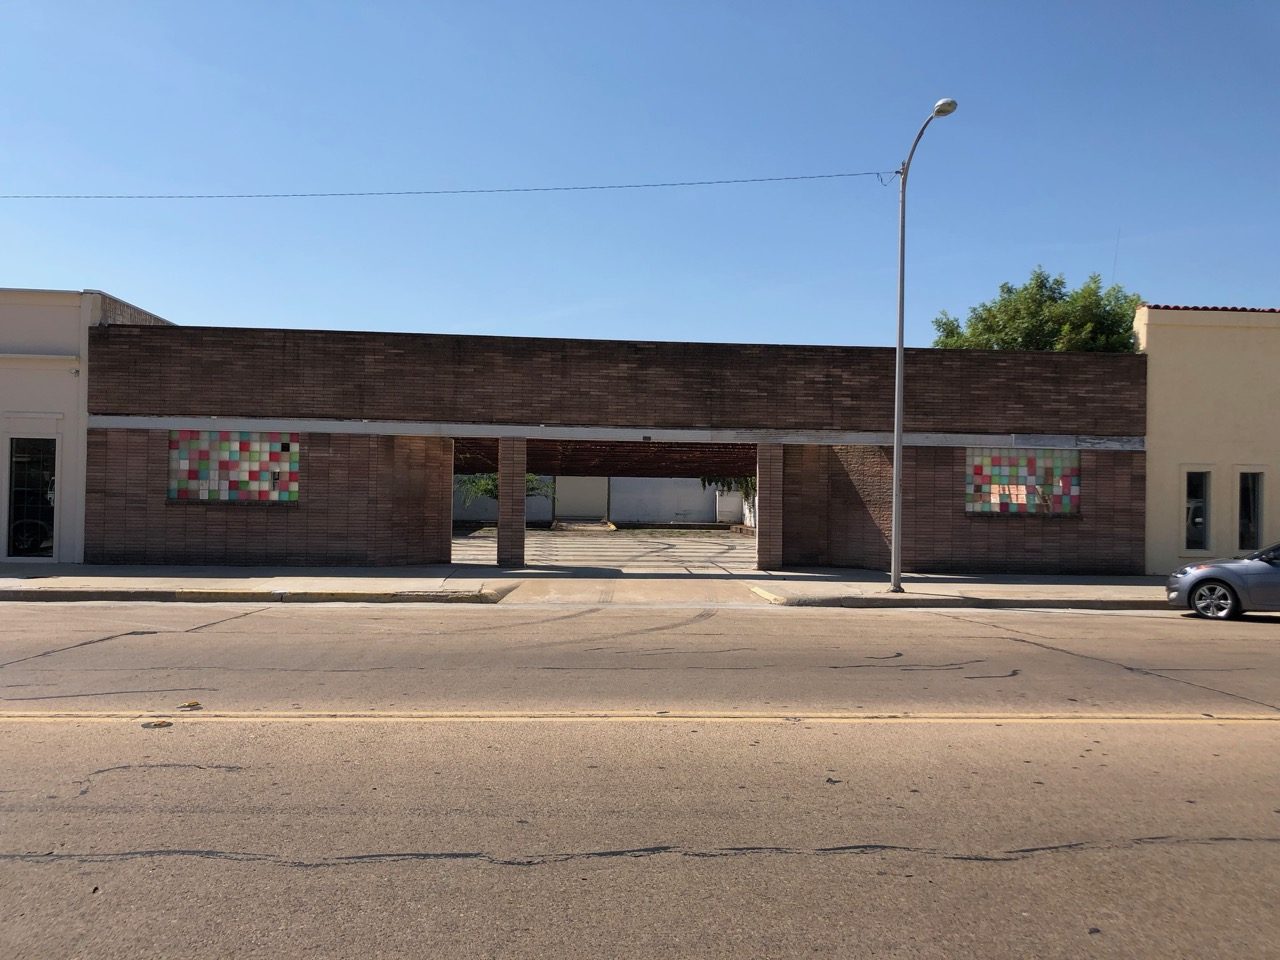 The front of the former Star Lanes Bowling Alley at 125 W. Twohig Ave. (LIVE! Photo/Joe Hyde)